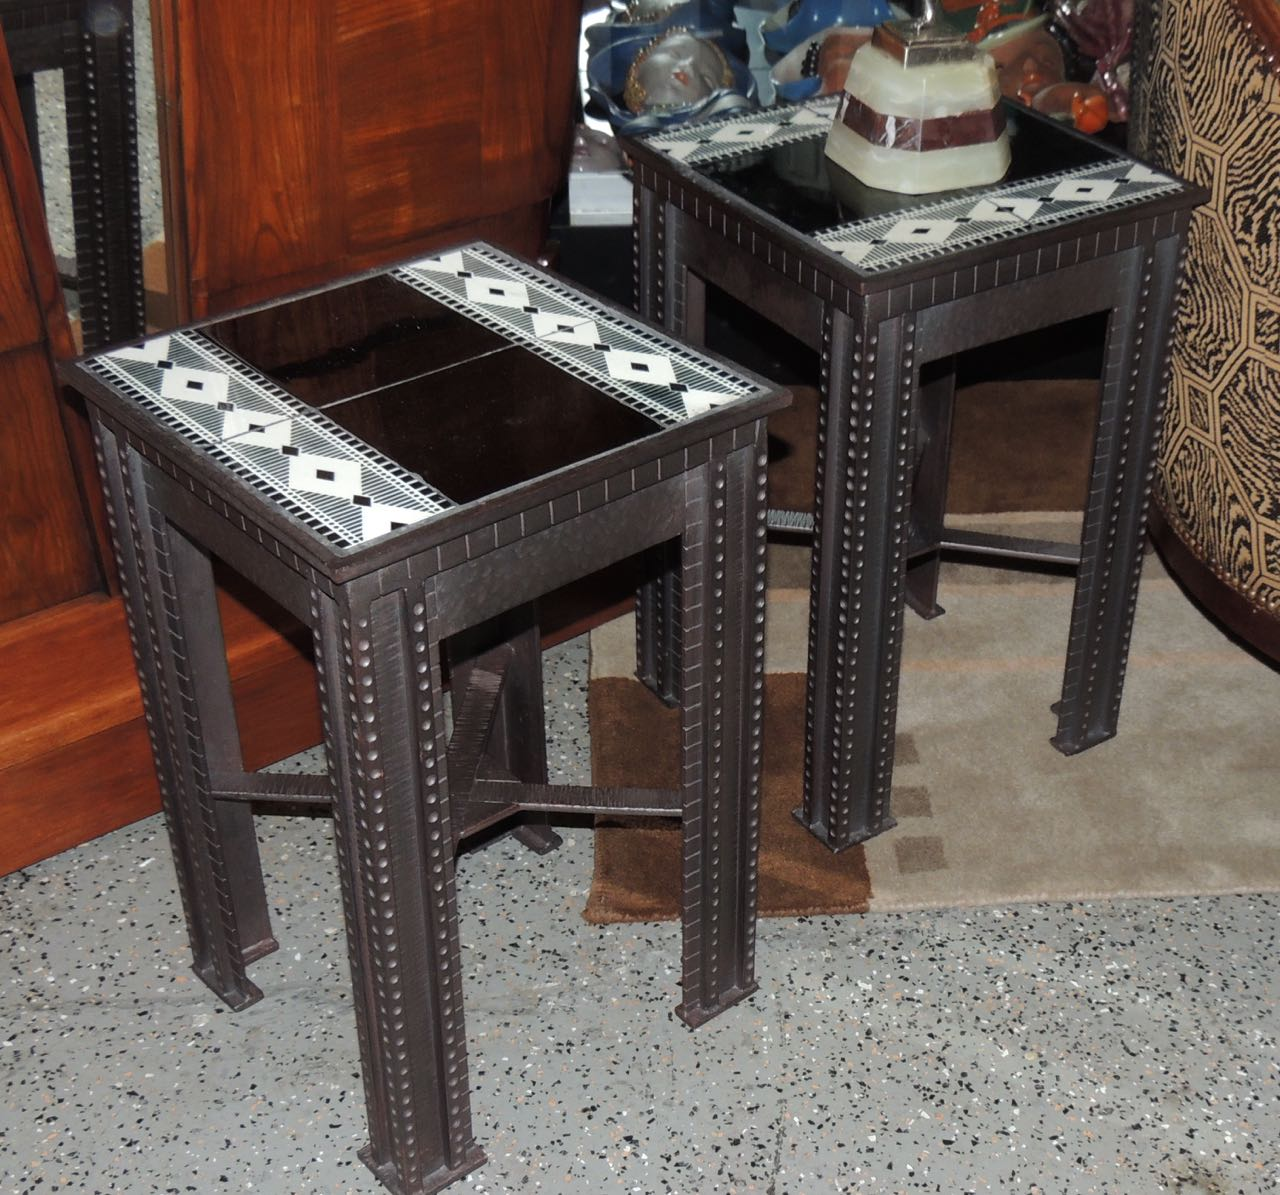 Hand wrought iron art deco table with tiles sold items for Petite table deco